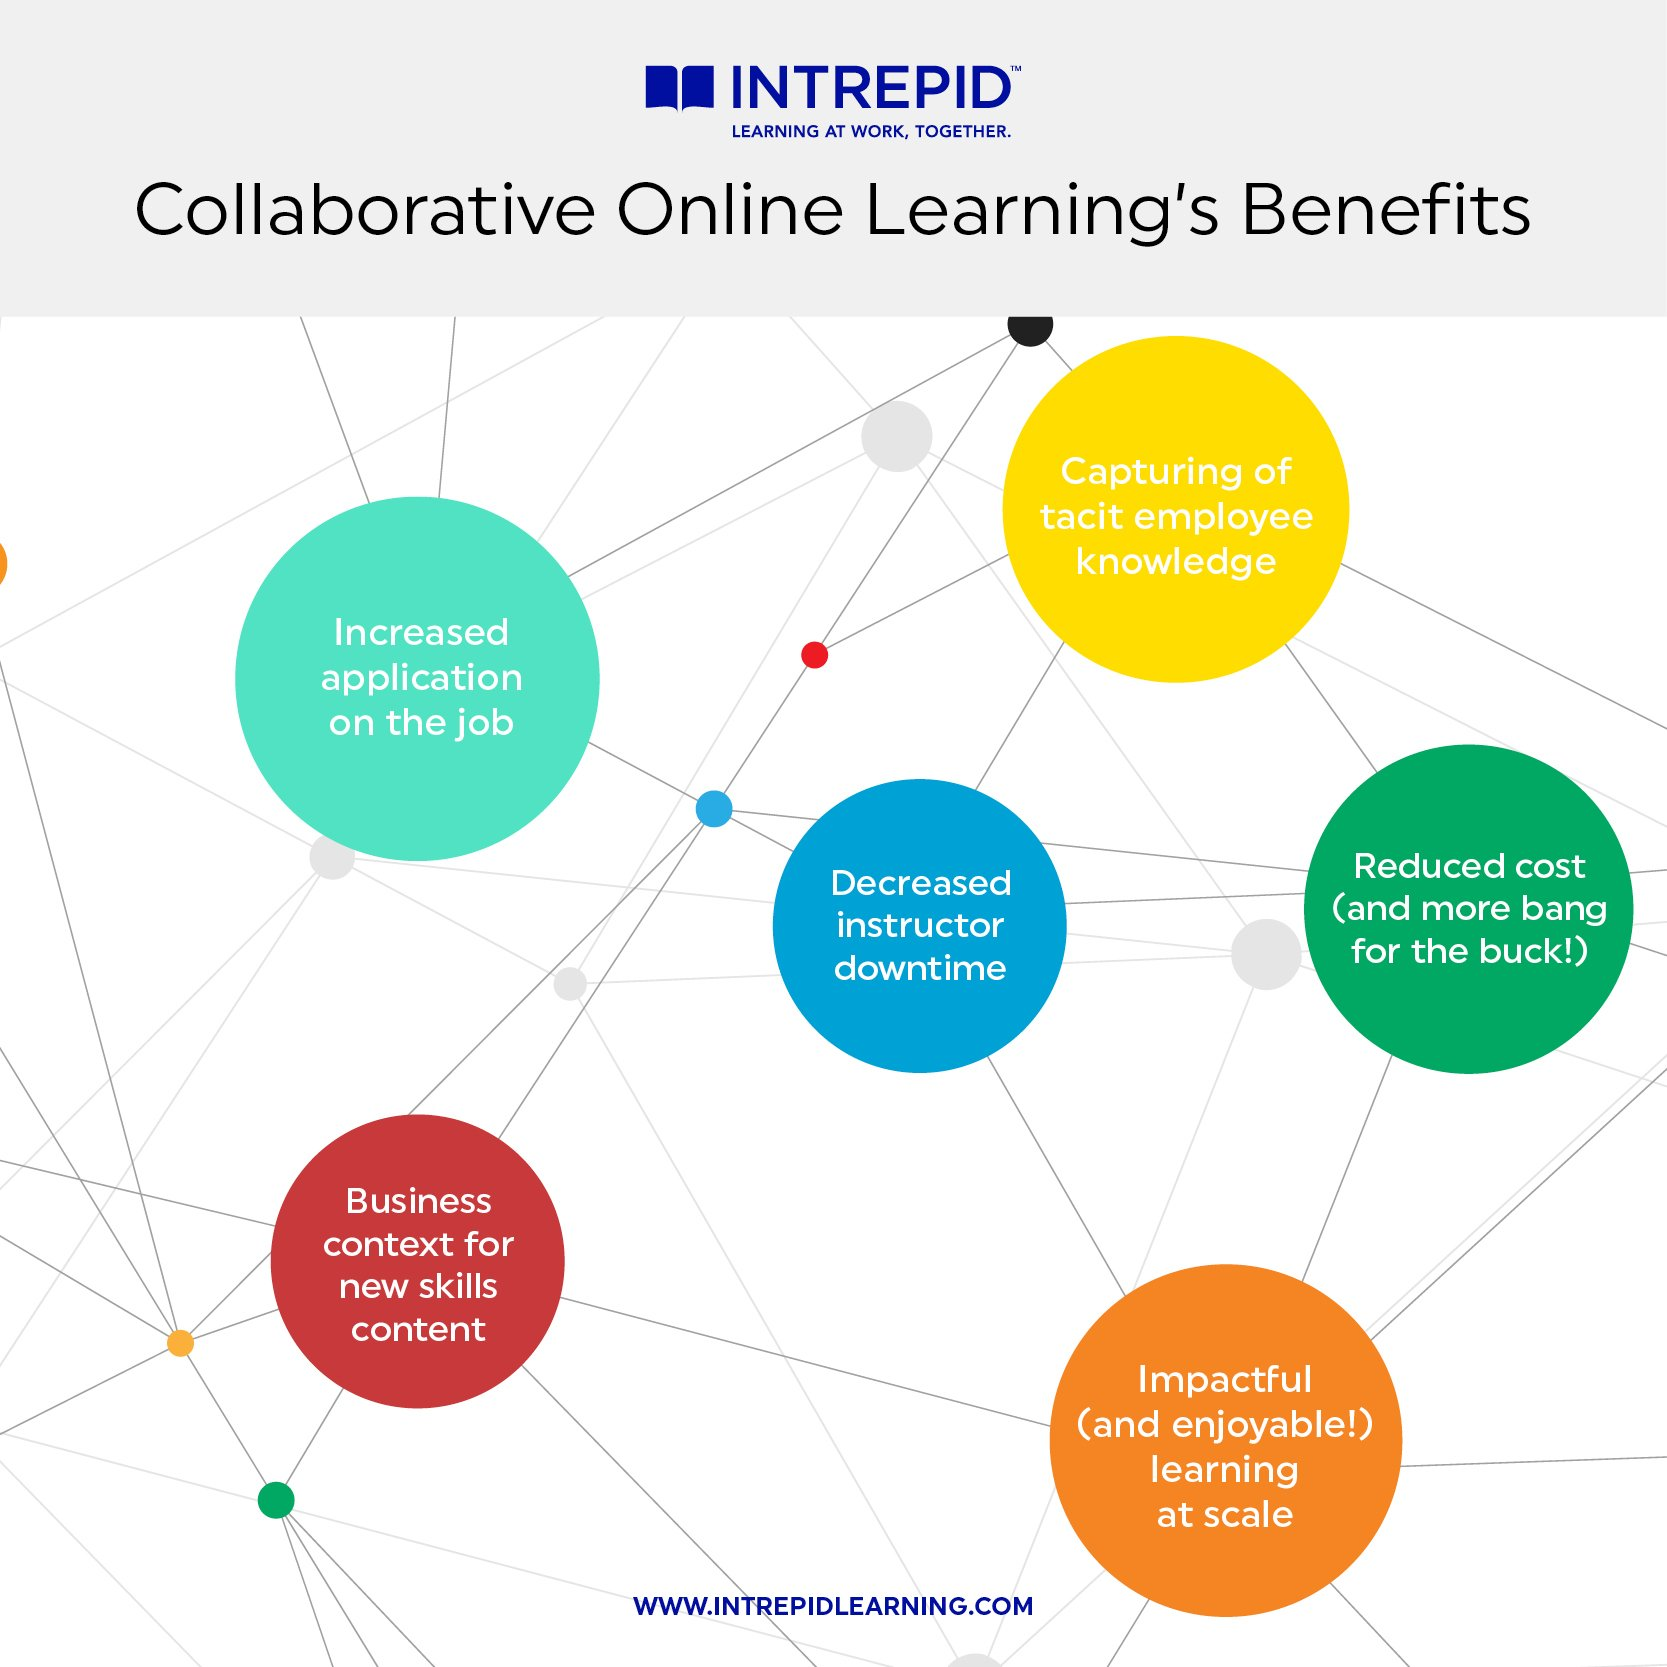 Benefits of Collaborative Online Learning infographic